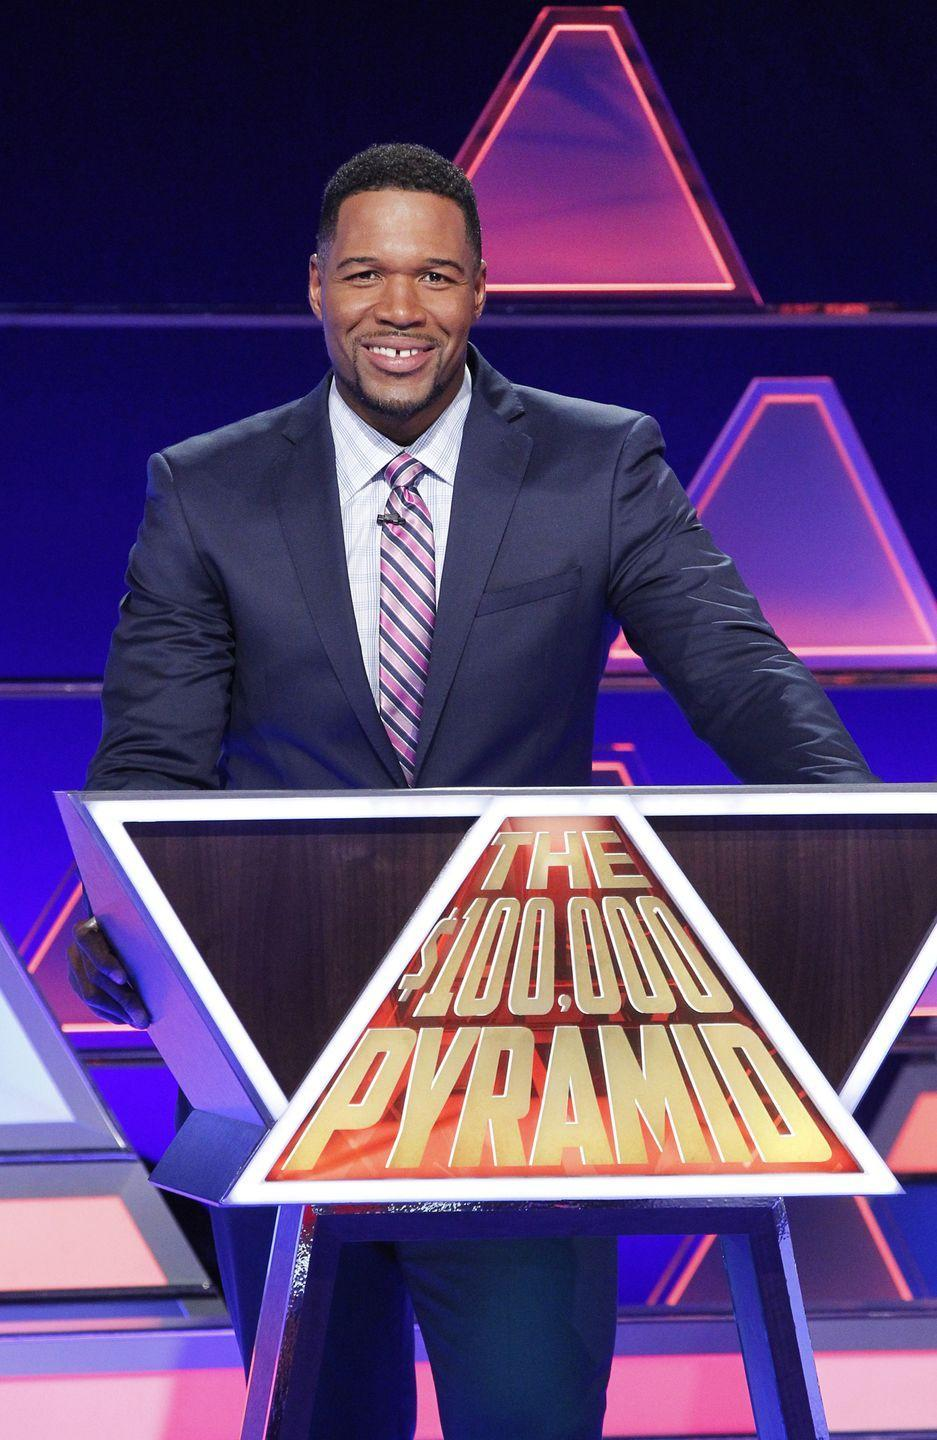 <p>In 2016, Pyramid was revived with a $100,00o prize as part of ABC's game show lineup. Michael Strahan has been hosting the show, which was renewed for a fifth season. Before <em>Pyramid, </em>Strahan had a long career as a defensive end with the New York Giants. He was the co-host of <em>Live! With Kelly and Michael </em>for four years before joining <em>Good Morning America</em> and <em>Strahan, Sara & Keke. </em></p>